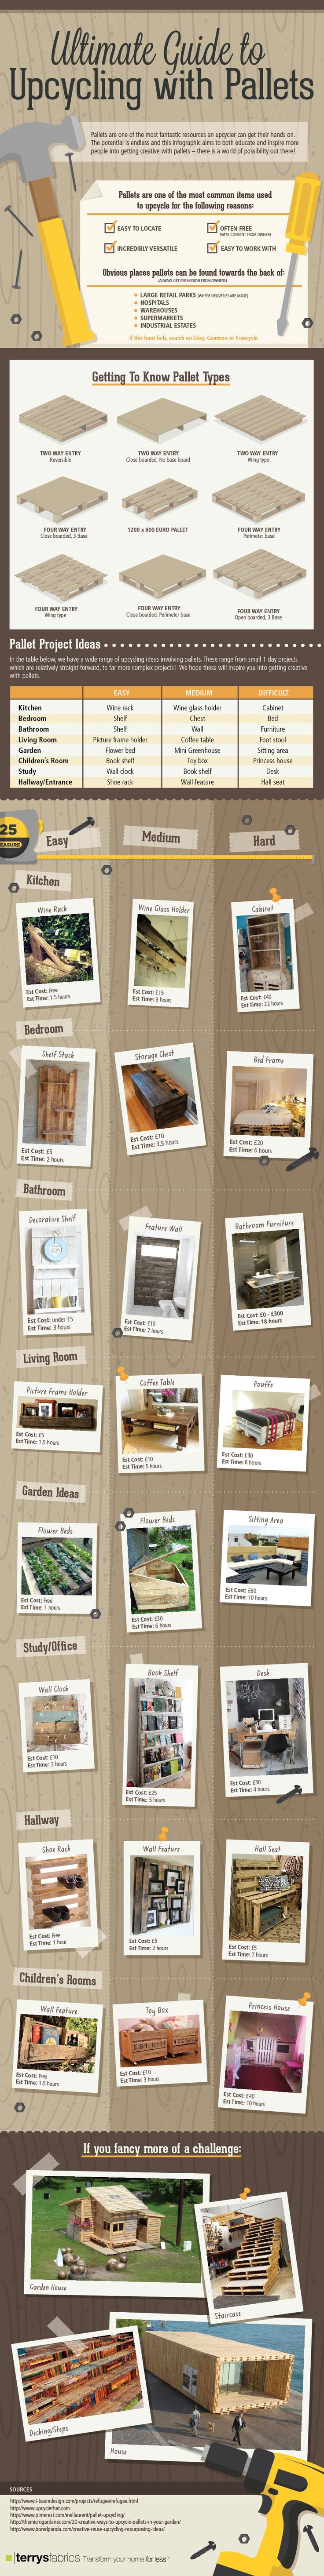 Ultimate Guide To Upcycling With Pallets Infographic - How To... This and That